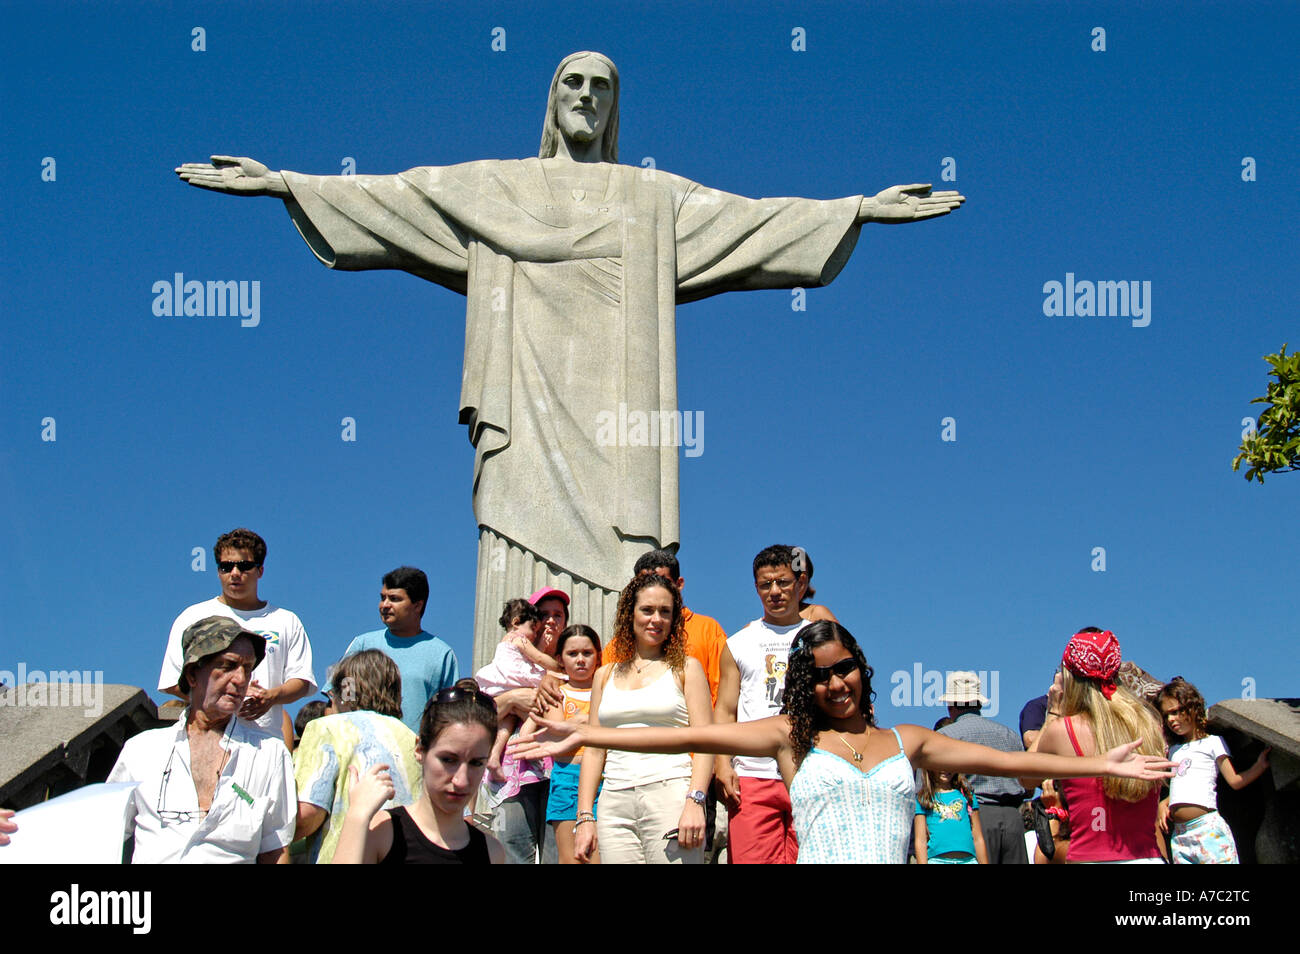 Tourists at Statue of Christ the Redeemer, Corcovado Mountain, Rio de Janeiro - Stock Image